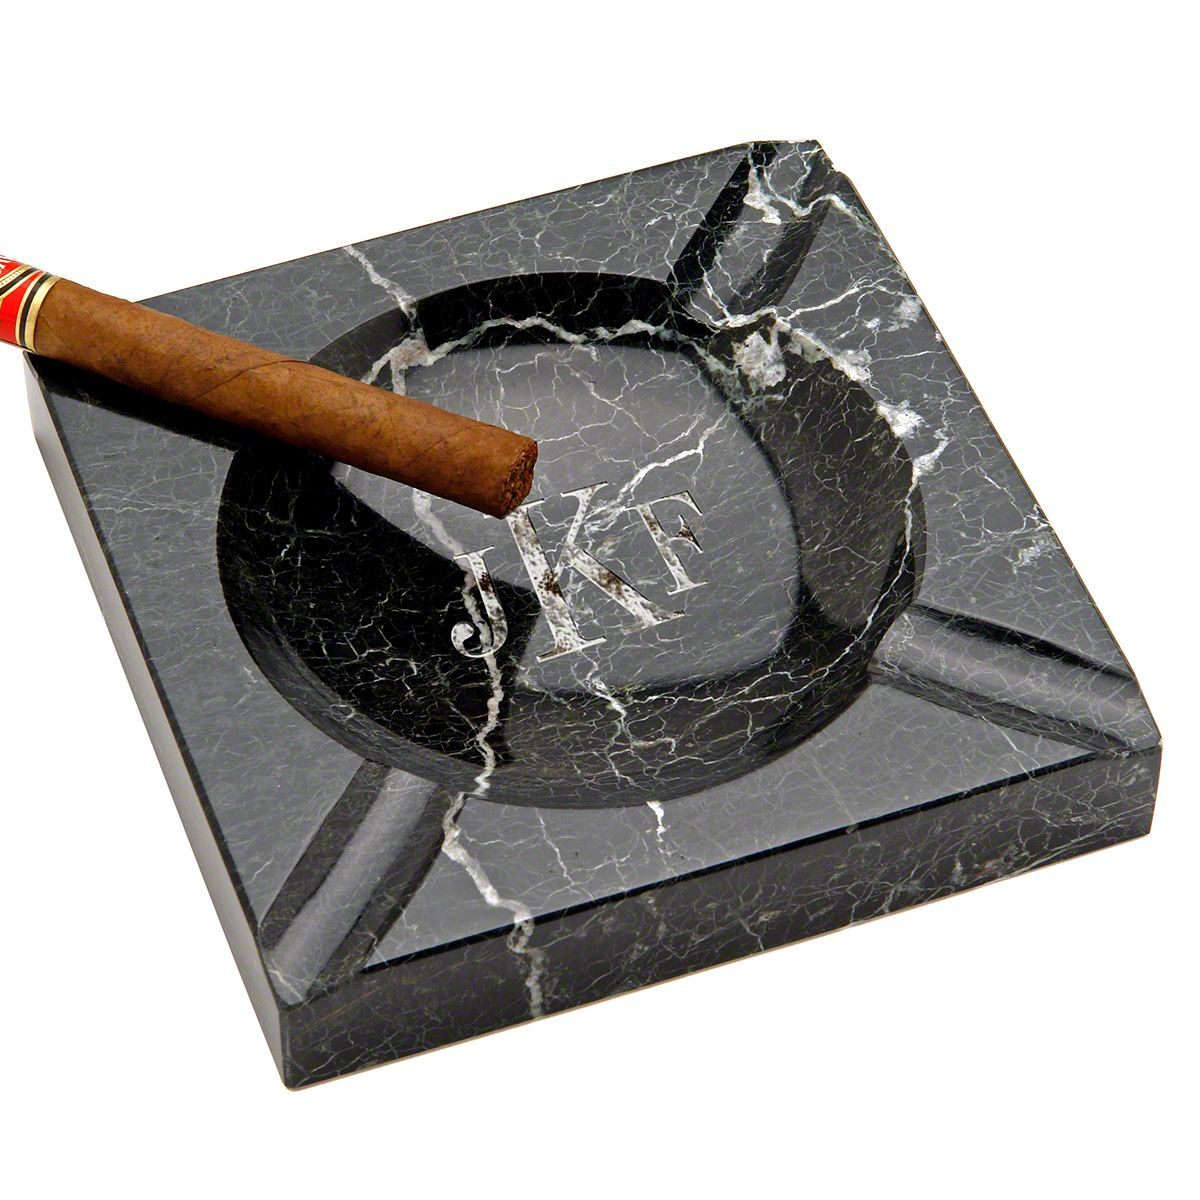 Black Square Marble Cigar Ashtray Indoor / Outdoor (Custom Engraving on fuel pump for golf carts, basket for golf carts, soft top for golf carts, mirrors for golf carts, rechargeable batteries for golf carts, seats for golf carts, radio for golf carts, battery for golf carts, floor mats for golf carts, fan for golf carts, wheels for golf carts, solar panels for golf carts, sun visor for golf carts, emergency lights for golf carts, roof rack for golf carts, cup holder for golf carts,